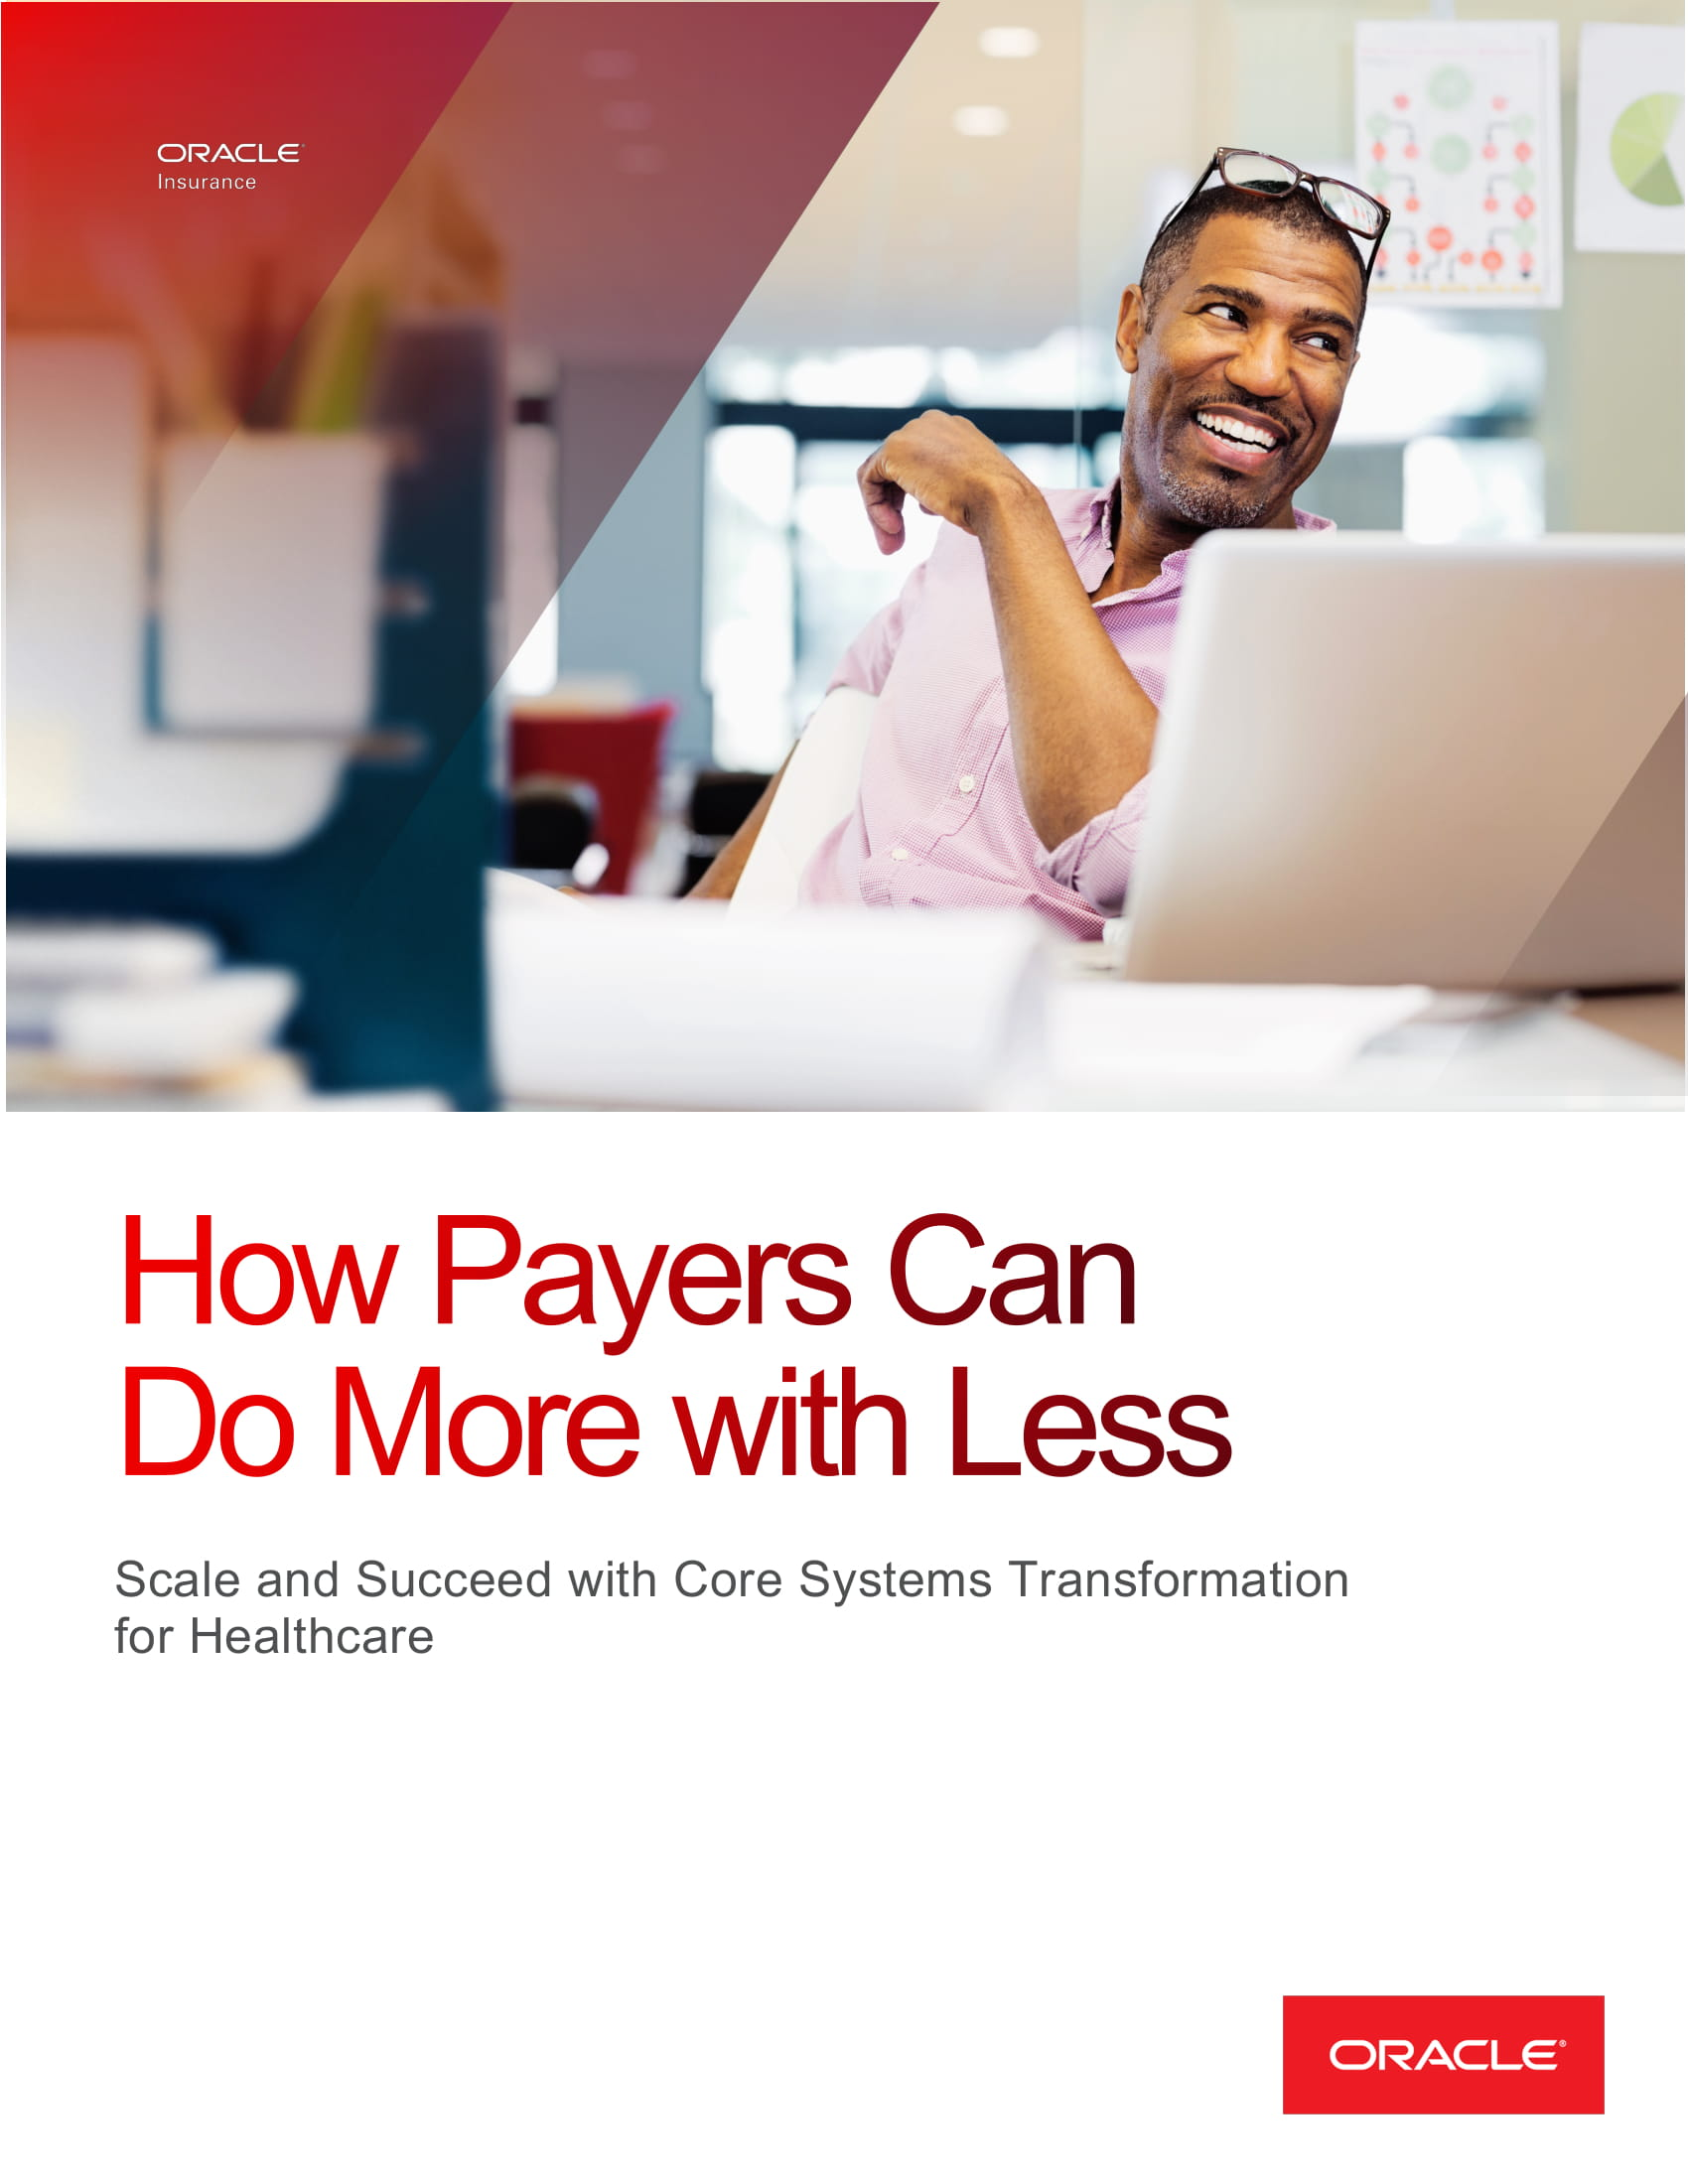 How Payers Can Do More with Less